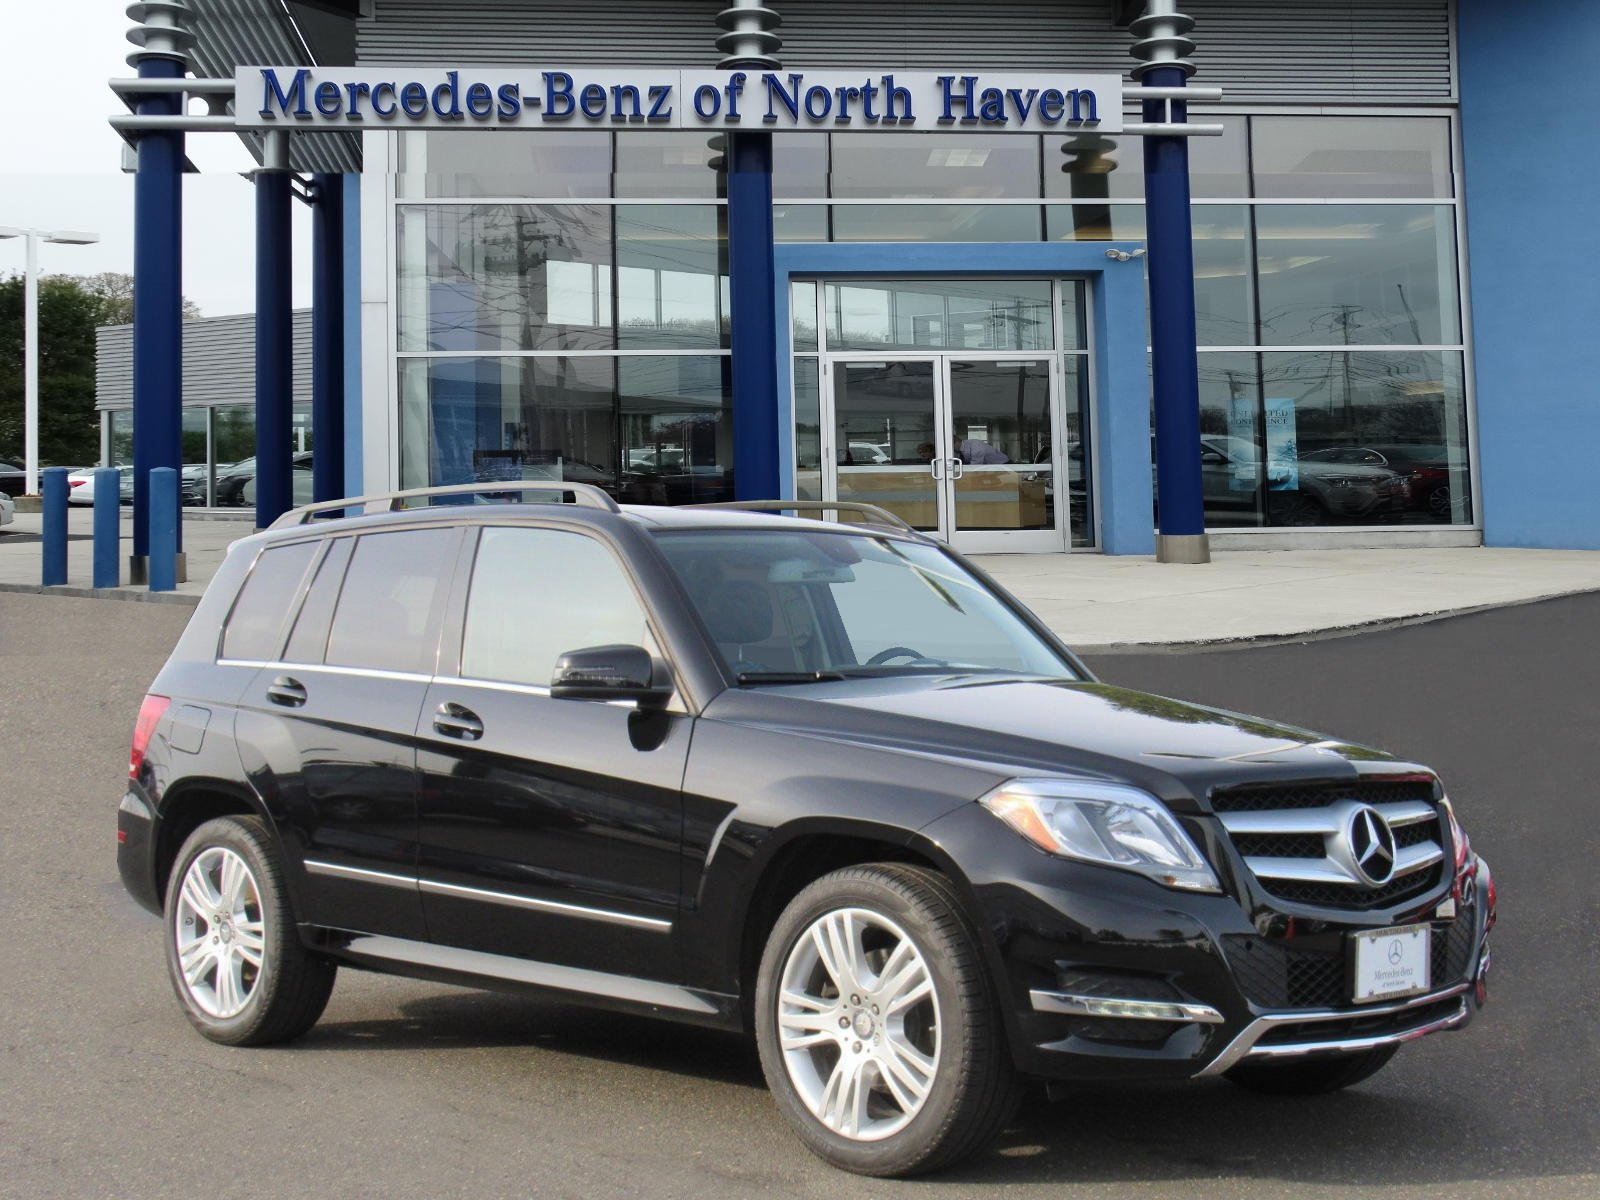 Pre Owned 2015 Mercedes Benz GLK GLK 350 SUV in North Haven M